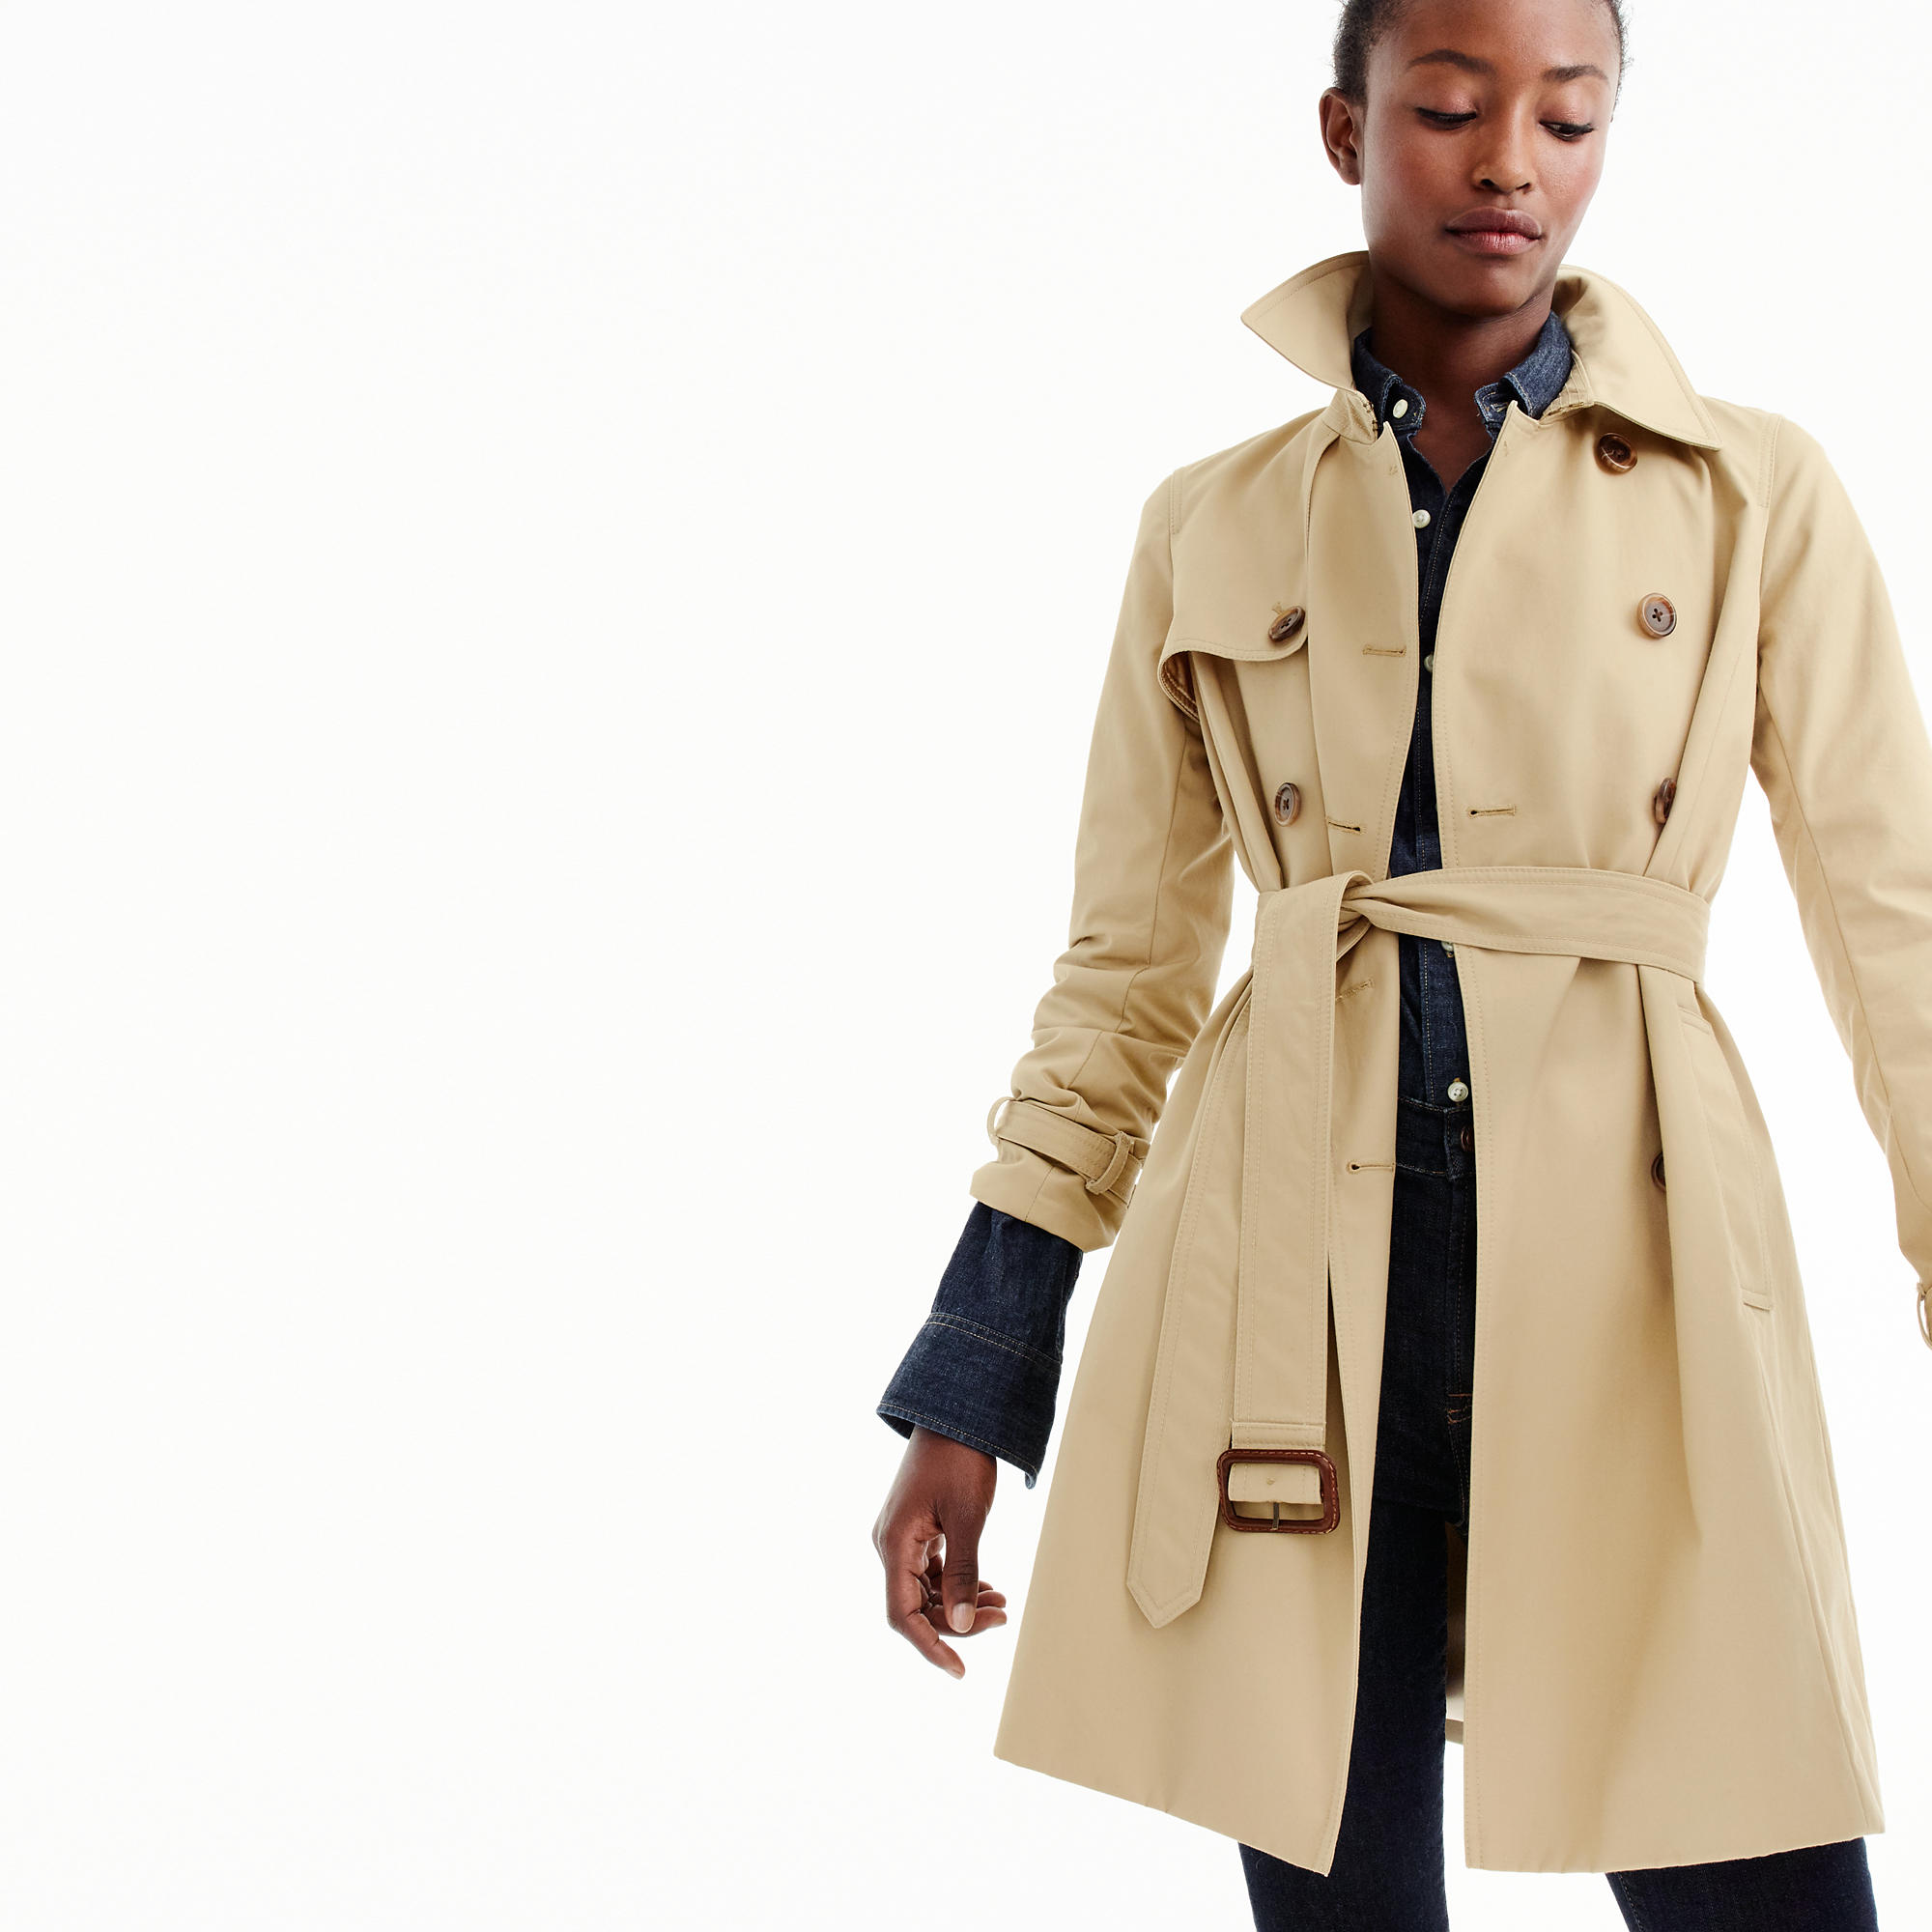 Petite Icon Trench Coat : Women's Coats & Jackets | J.Crew